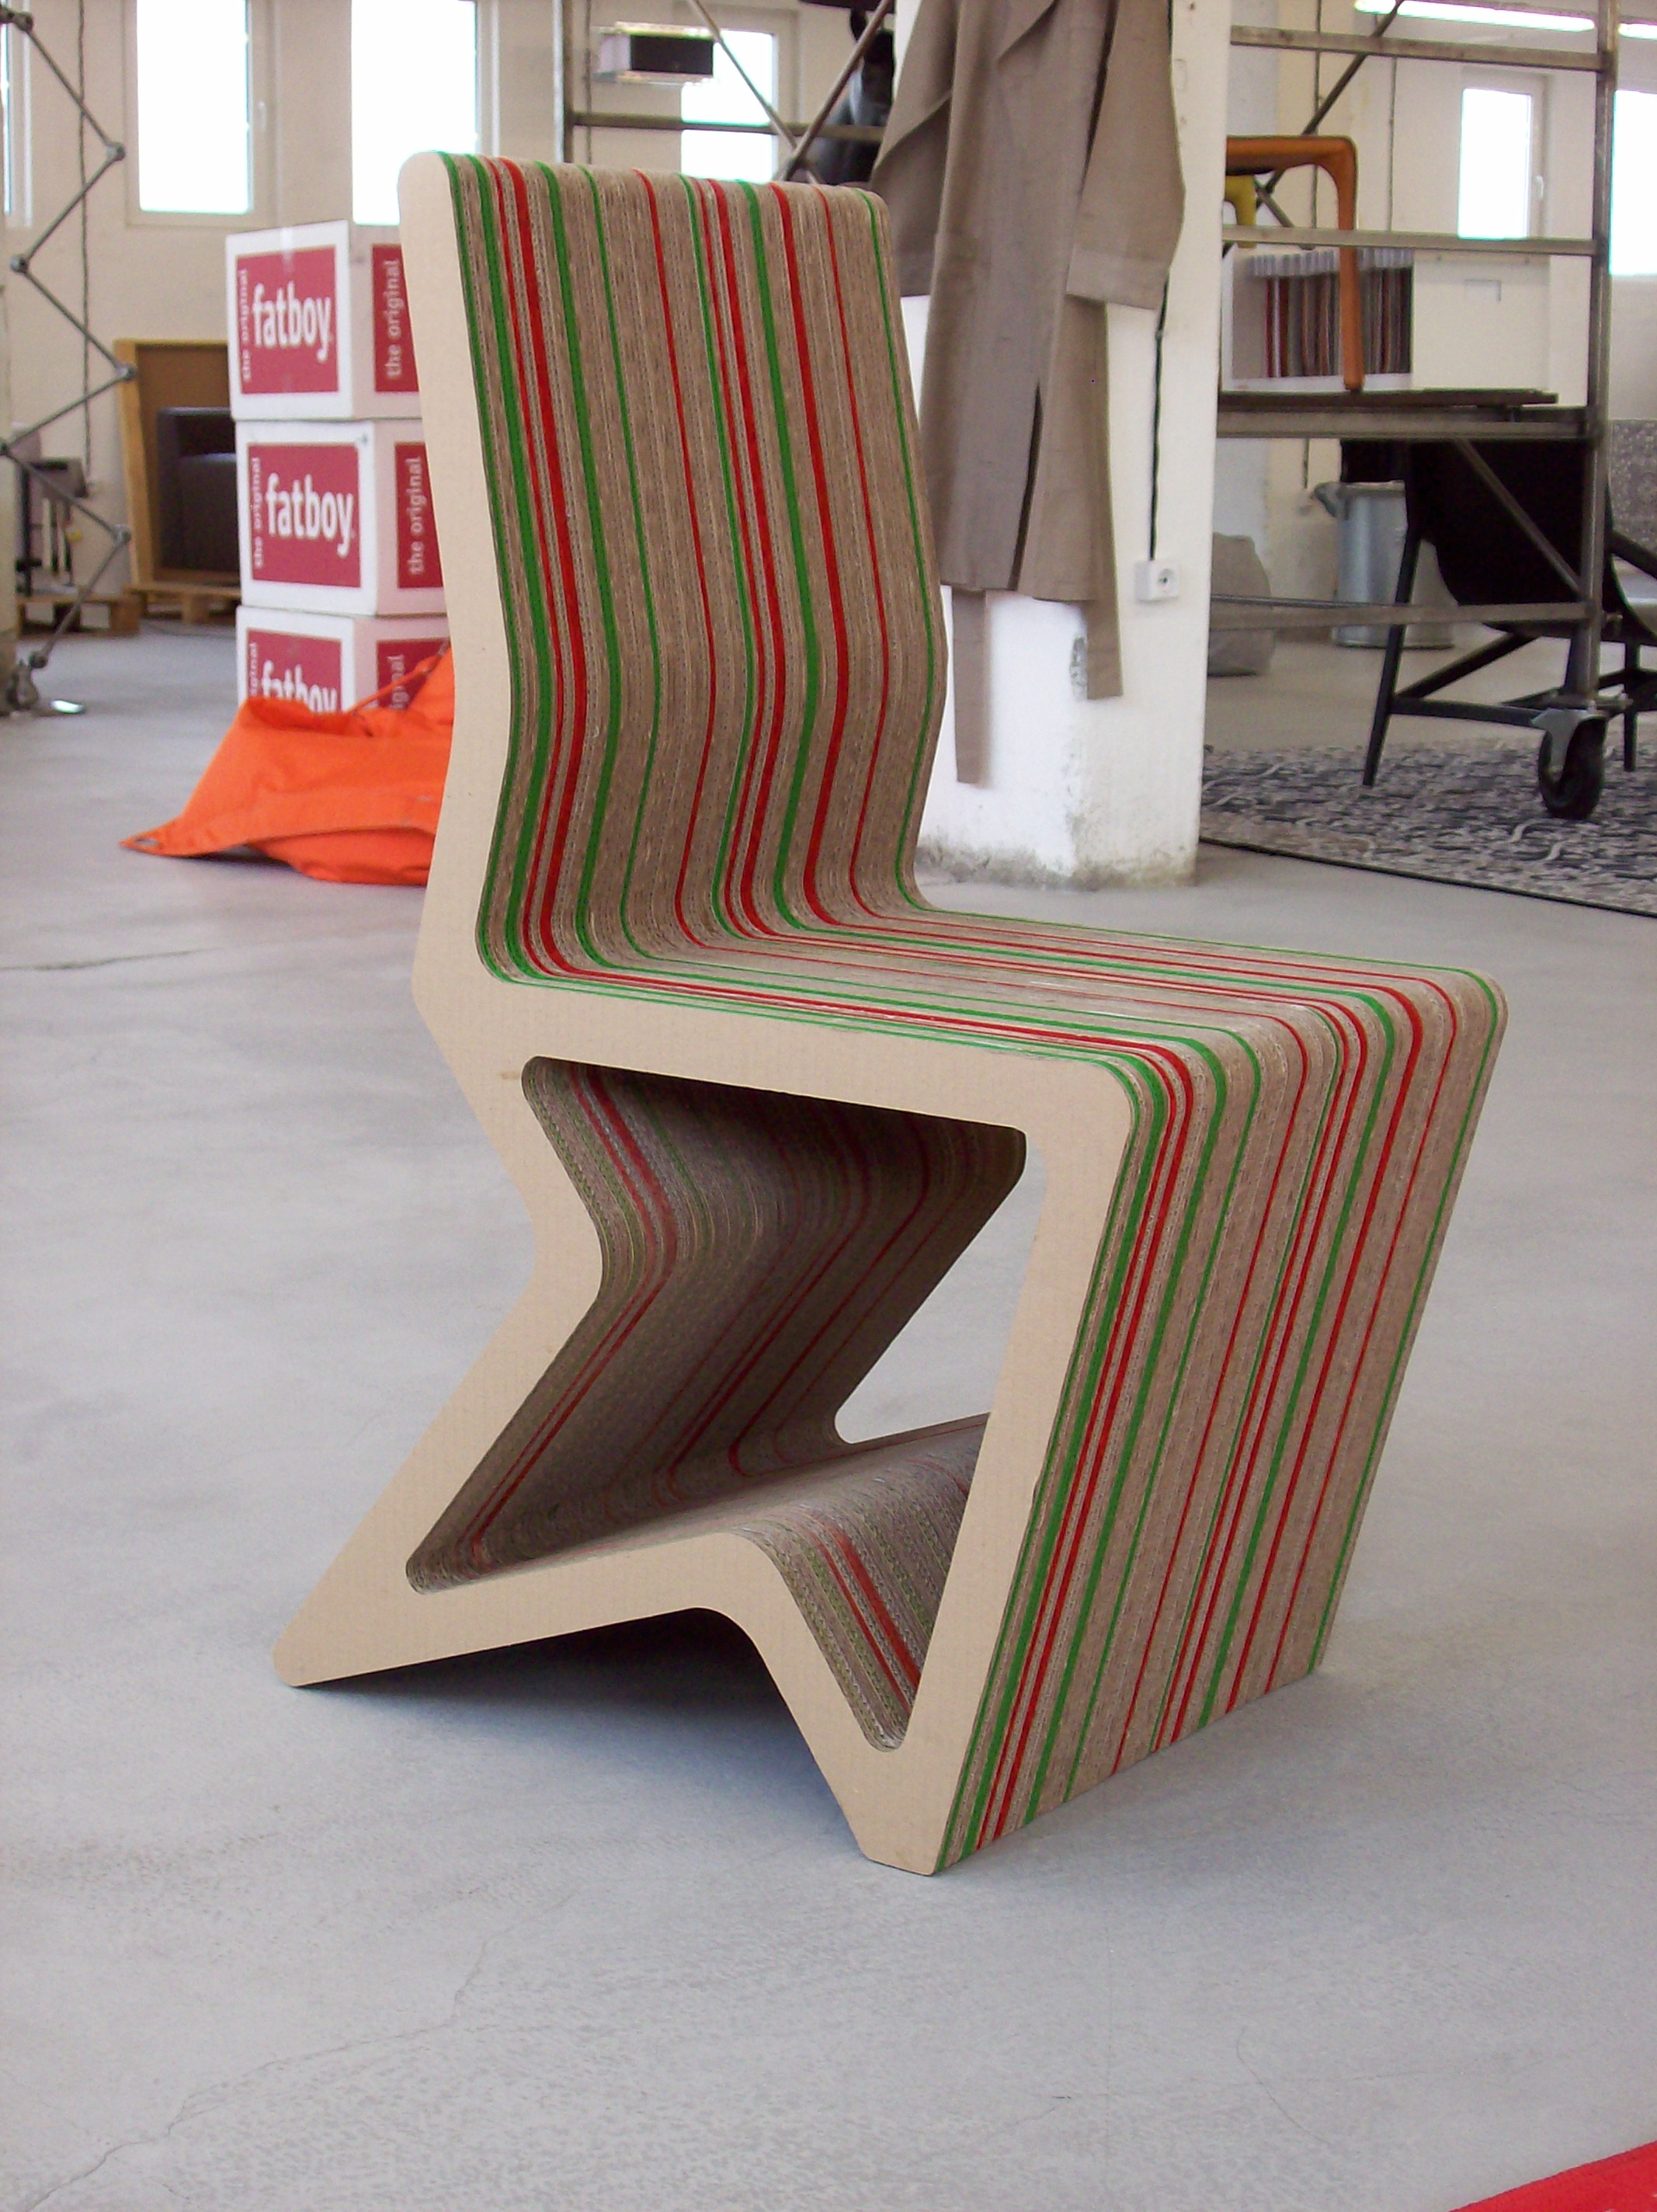 design chair for you folding office cardboard furniture by konstantin achkov at coroflot